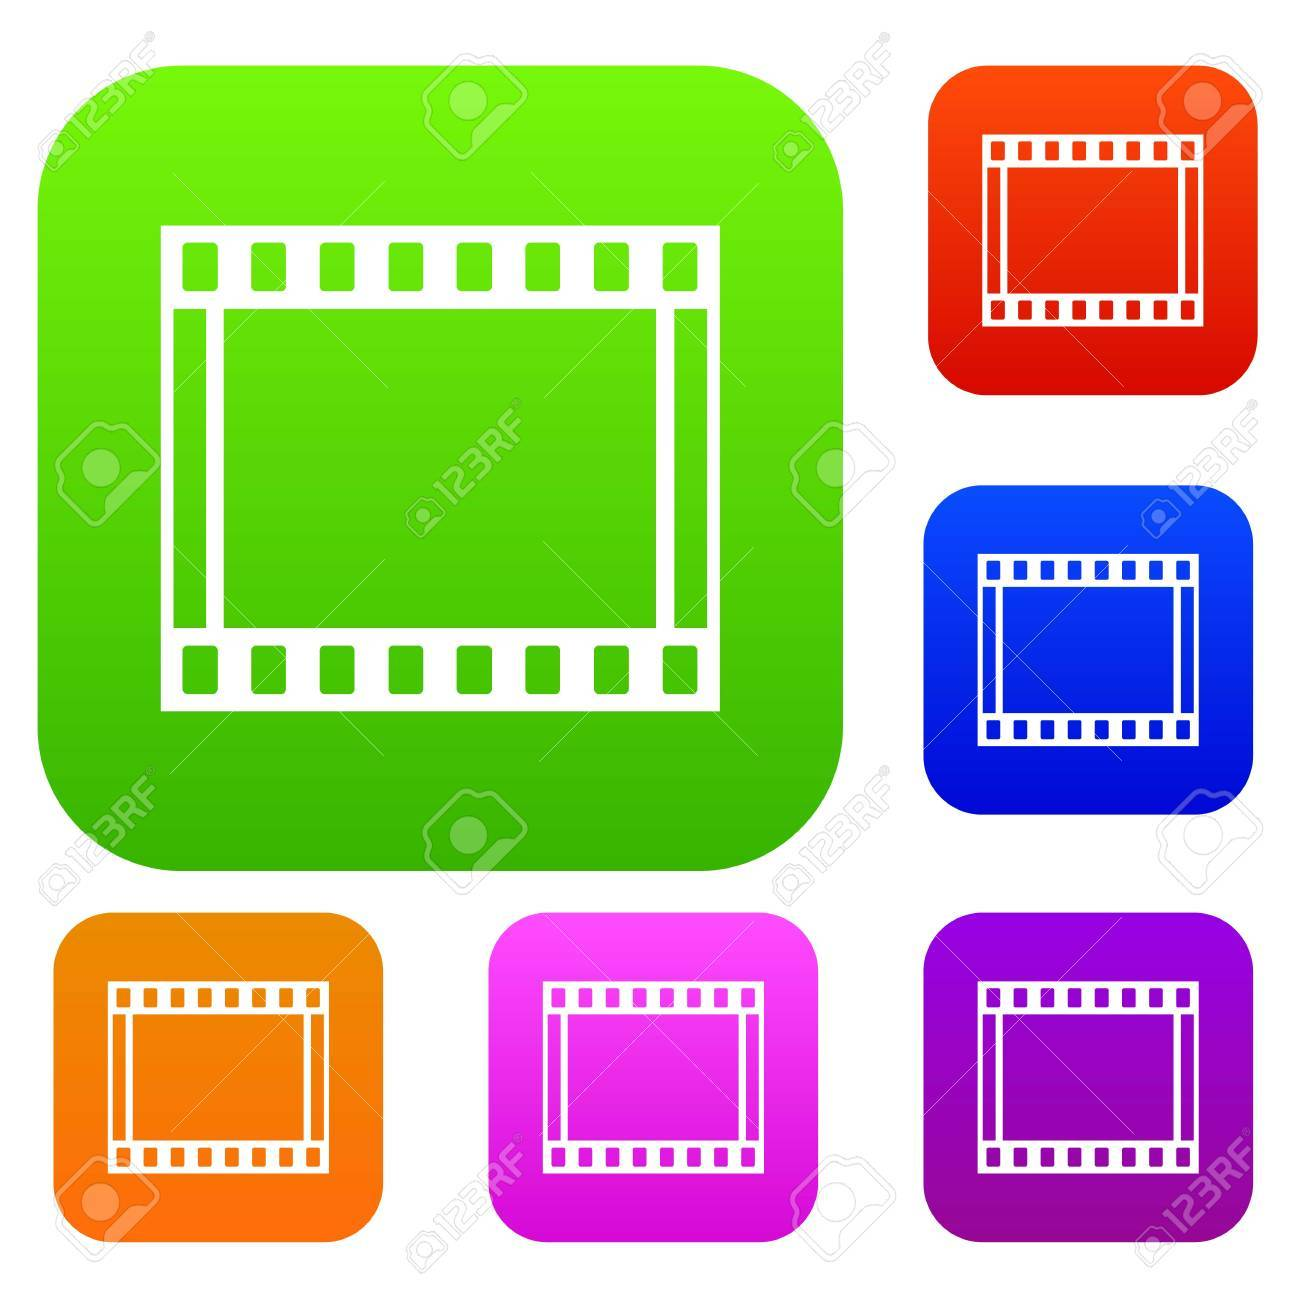 film with frames movie set icon in different colors isolated